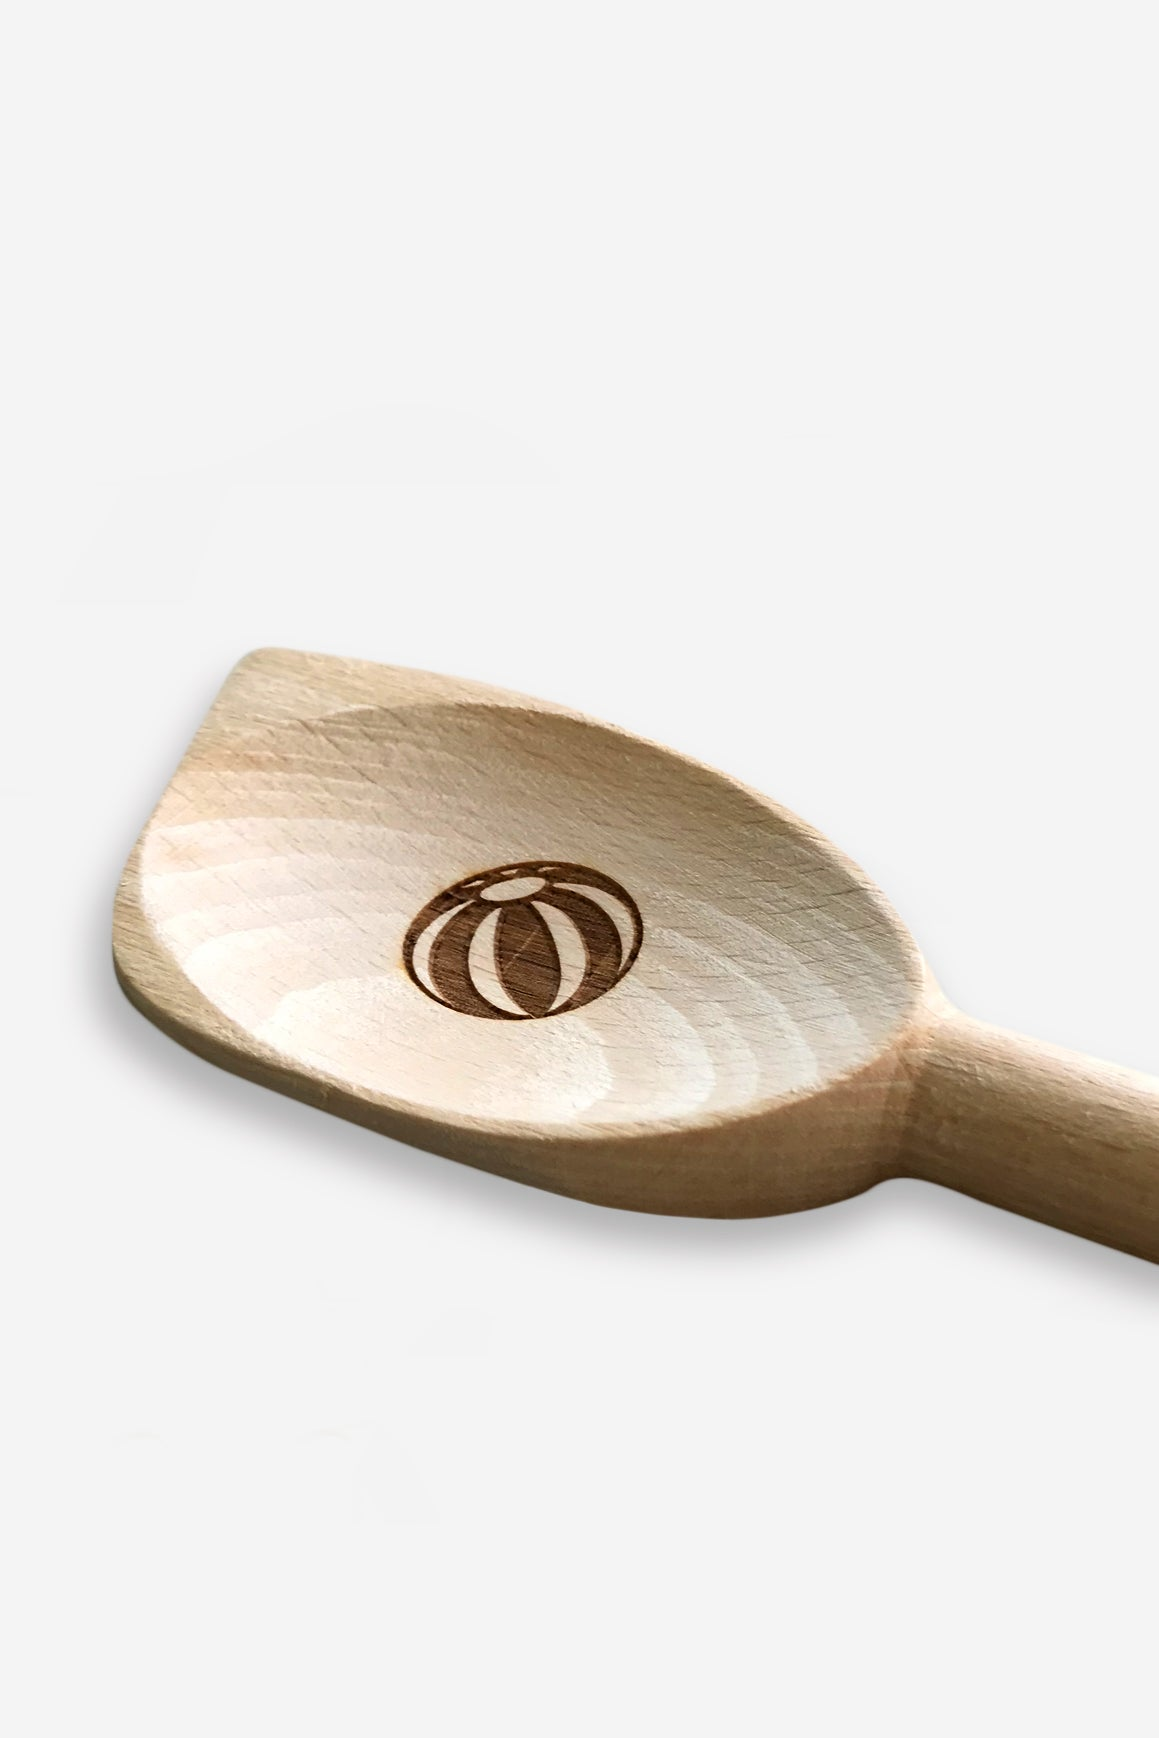 The Essential Wooden Spoon